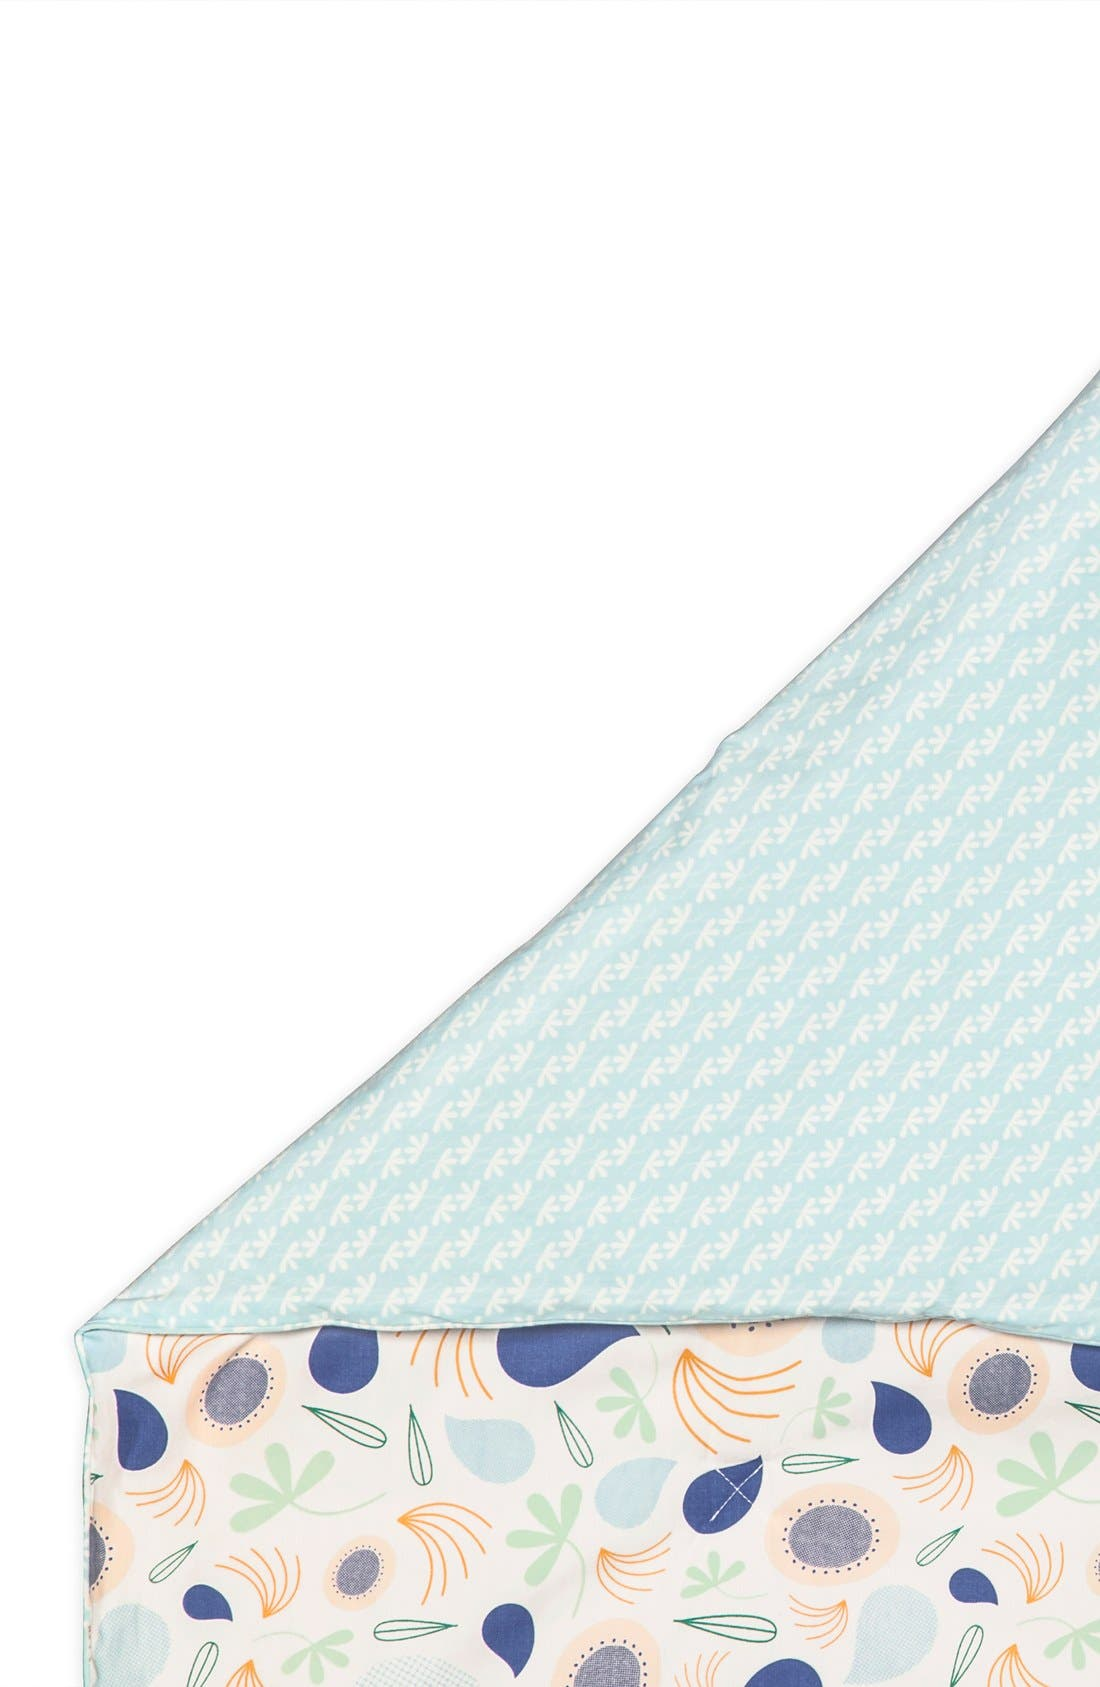 'Flora' Crib Sheet, Crib Skirt, Changing Pad Cover, Blanket & Wall Decals,                             Alternate thumbnail 4, color,                             Blue